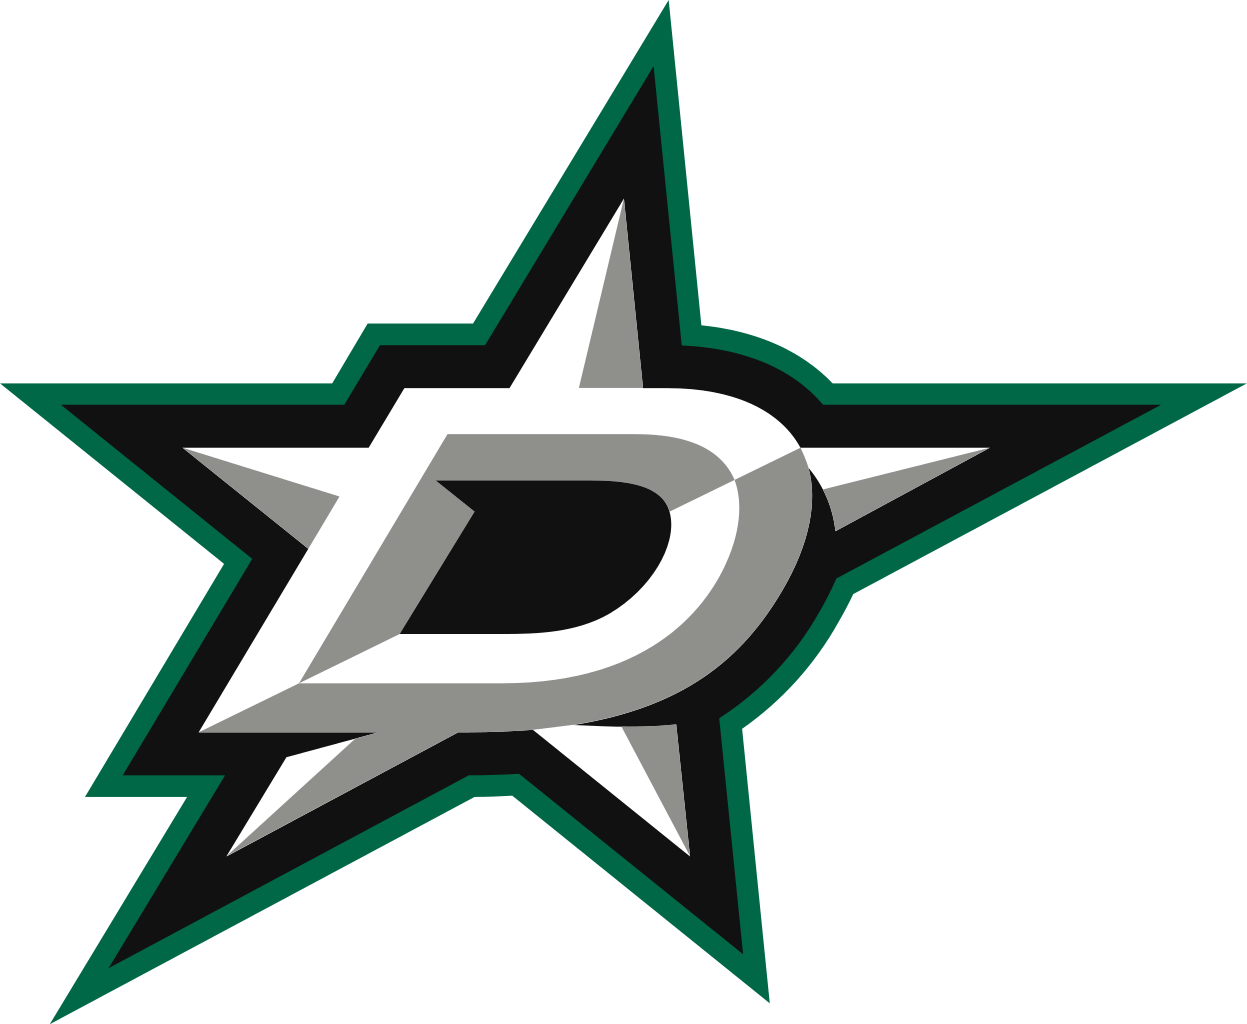 Star logo clipart picture free stock Dallas Stars Official Logo transparent PNG - StickPNG picture free stock